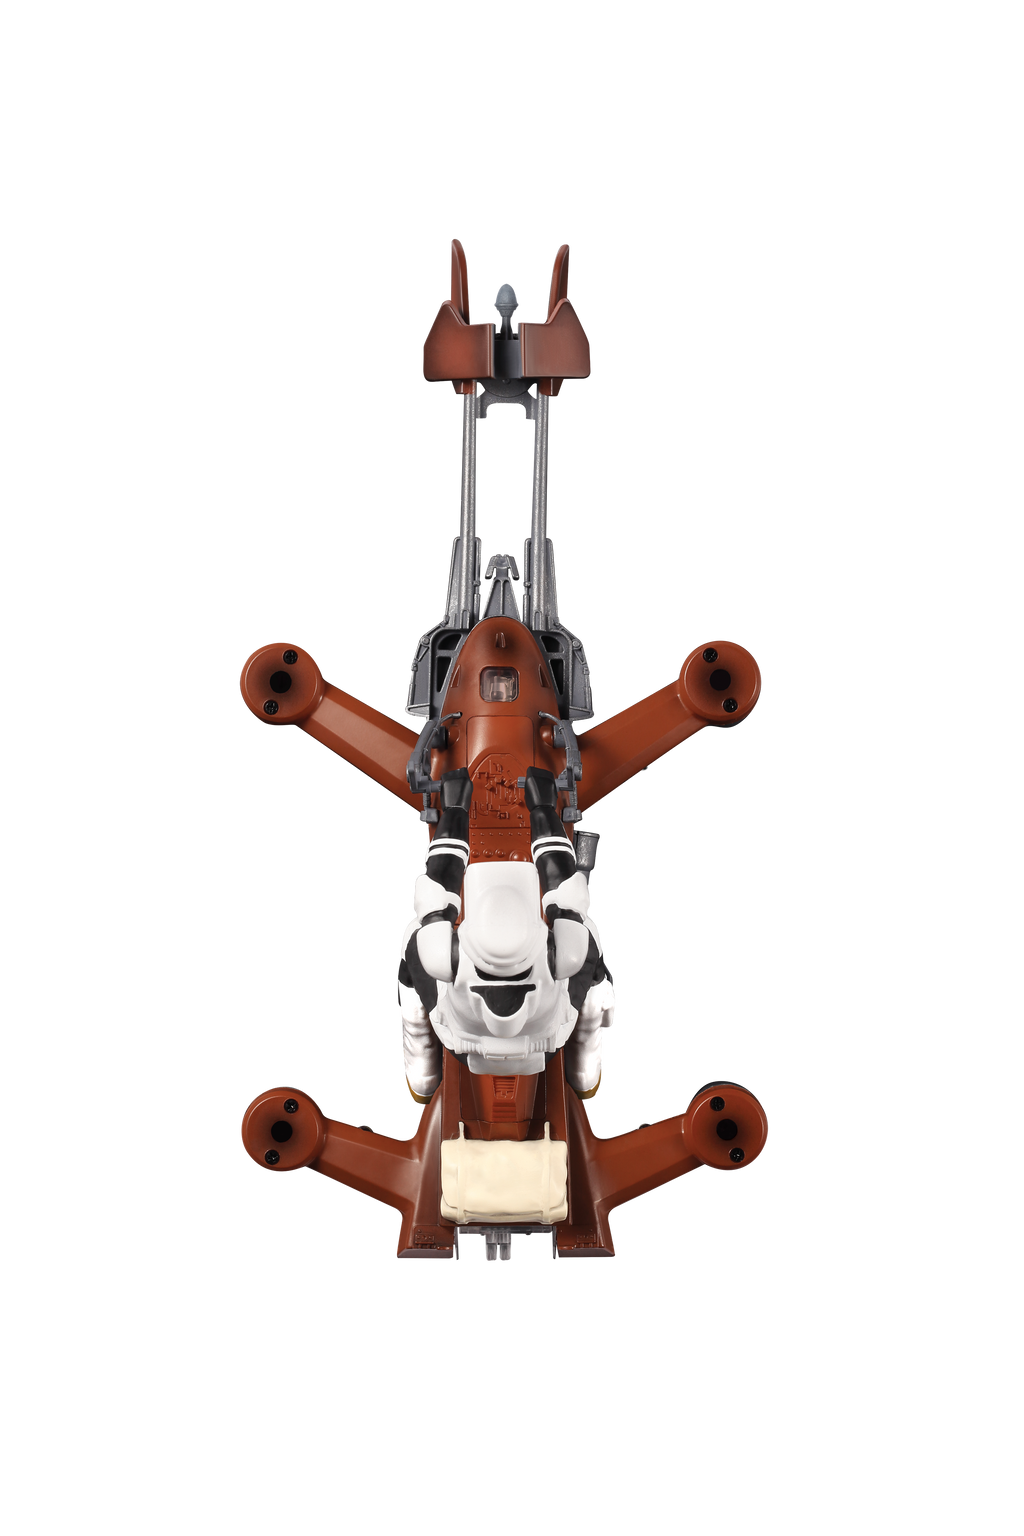 Star Wars 74-Z Speeder Bike Collectors Edition